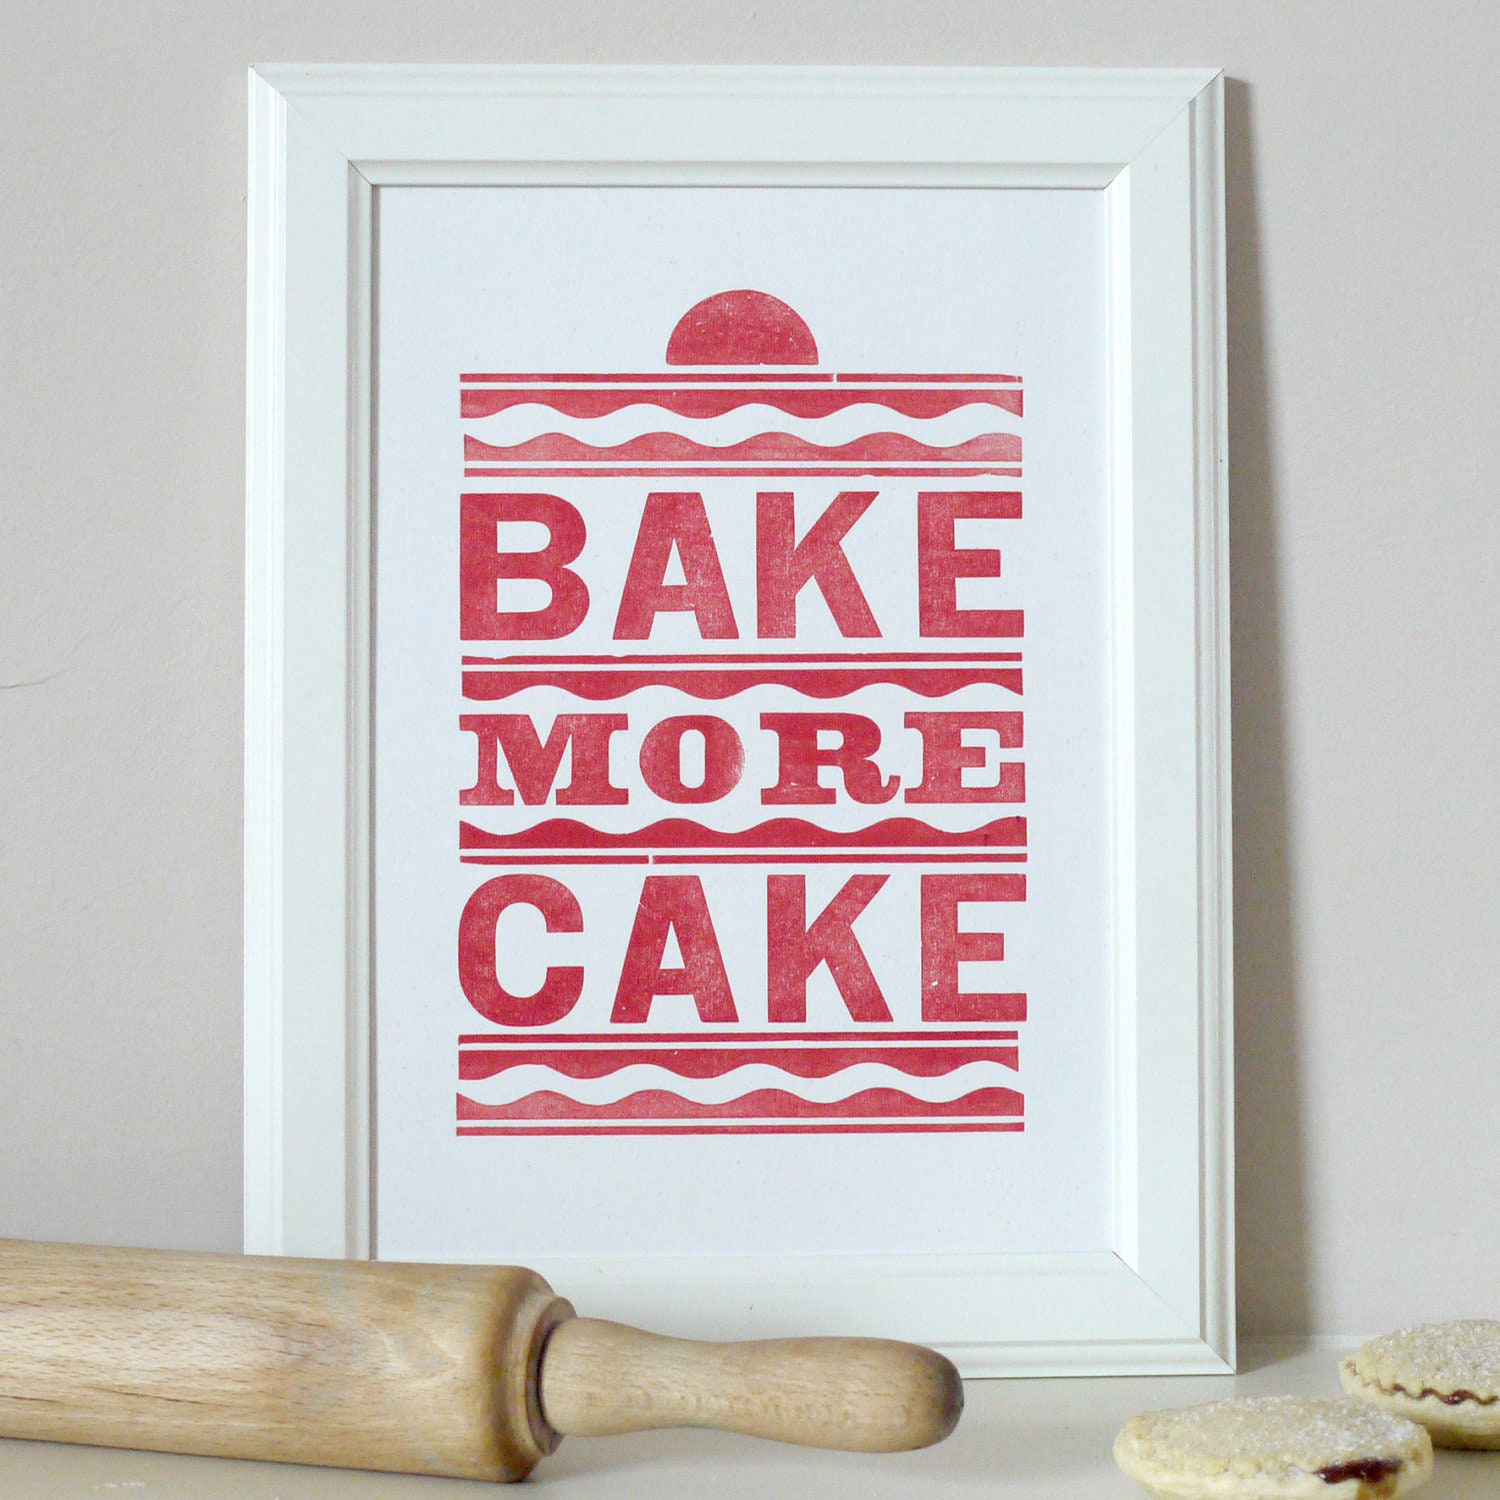 Vintage Bake More Cake Letterpress Print Red - PRINTforLOVEofWOOD